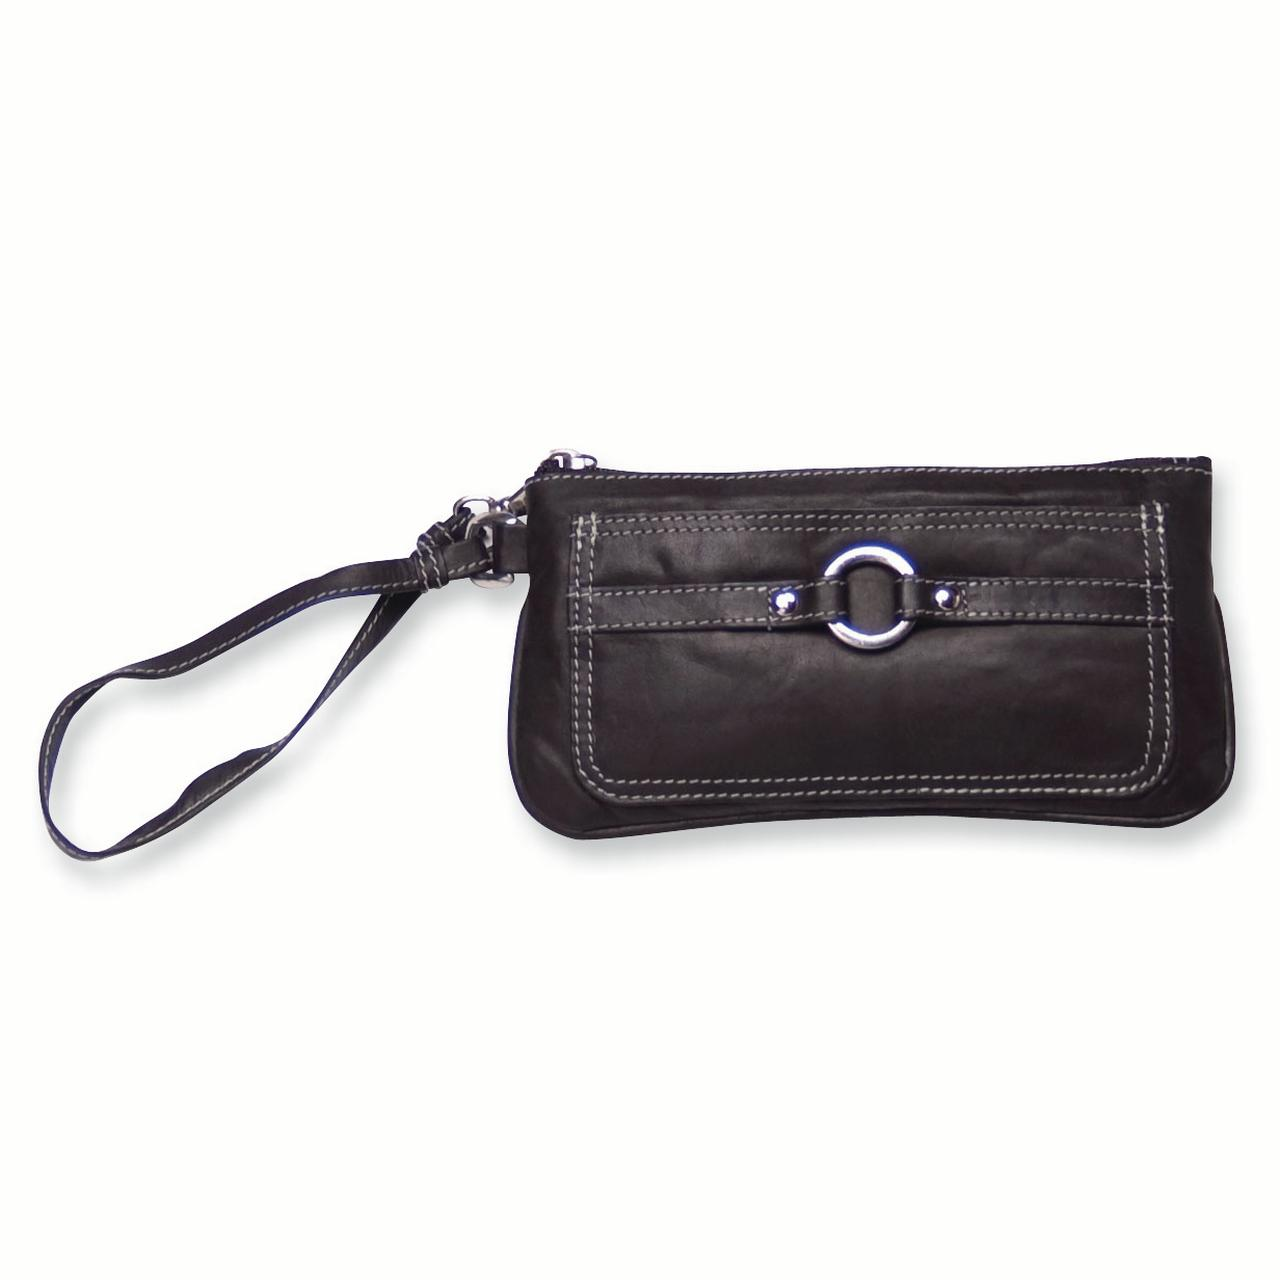 Black Leather Wristlet Woman Hbag Tote Wallet Travel Luggage Case Bag Leatwristlet Gifts For Women For Her